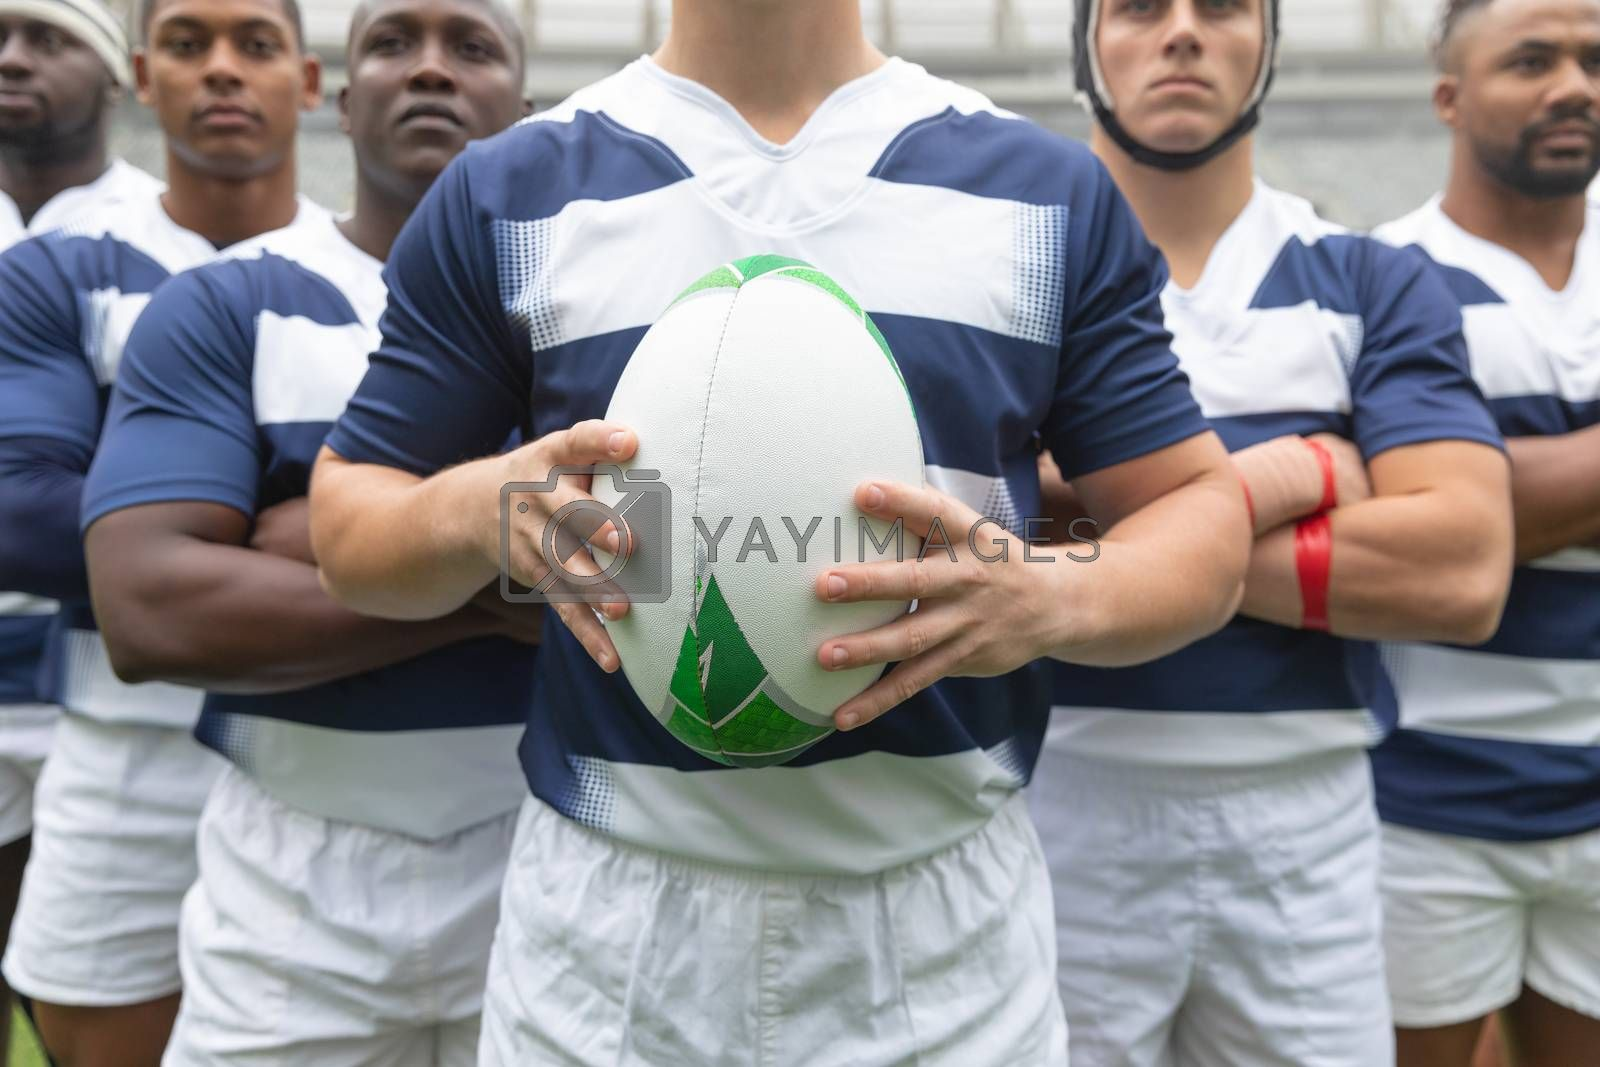 Mid section of group of male rugby players standing together with rugby ball in stadium